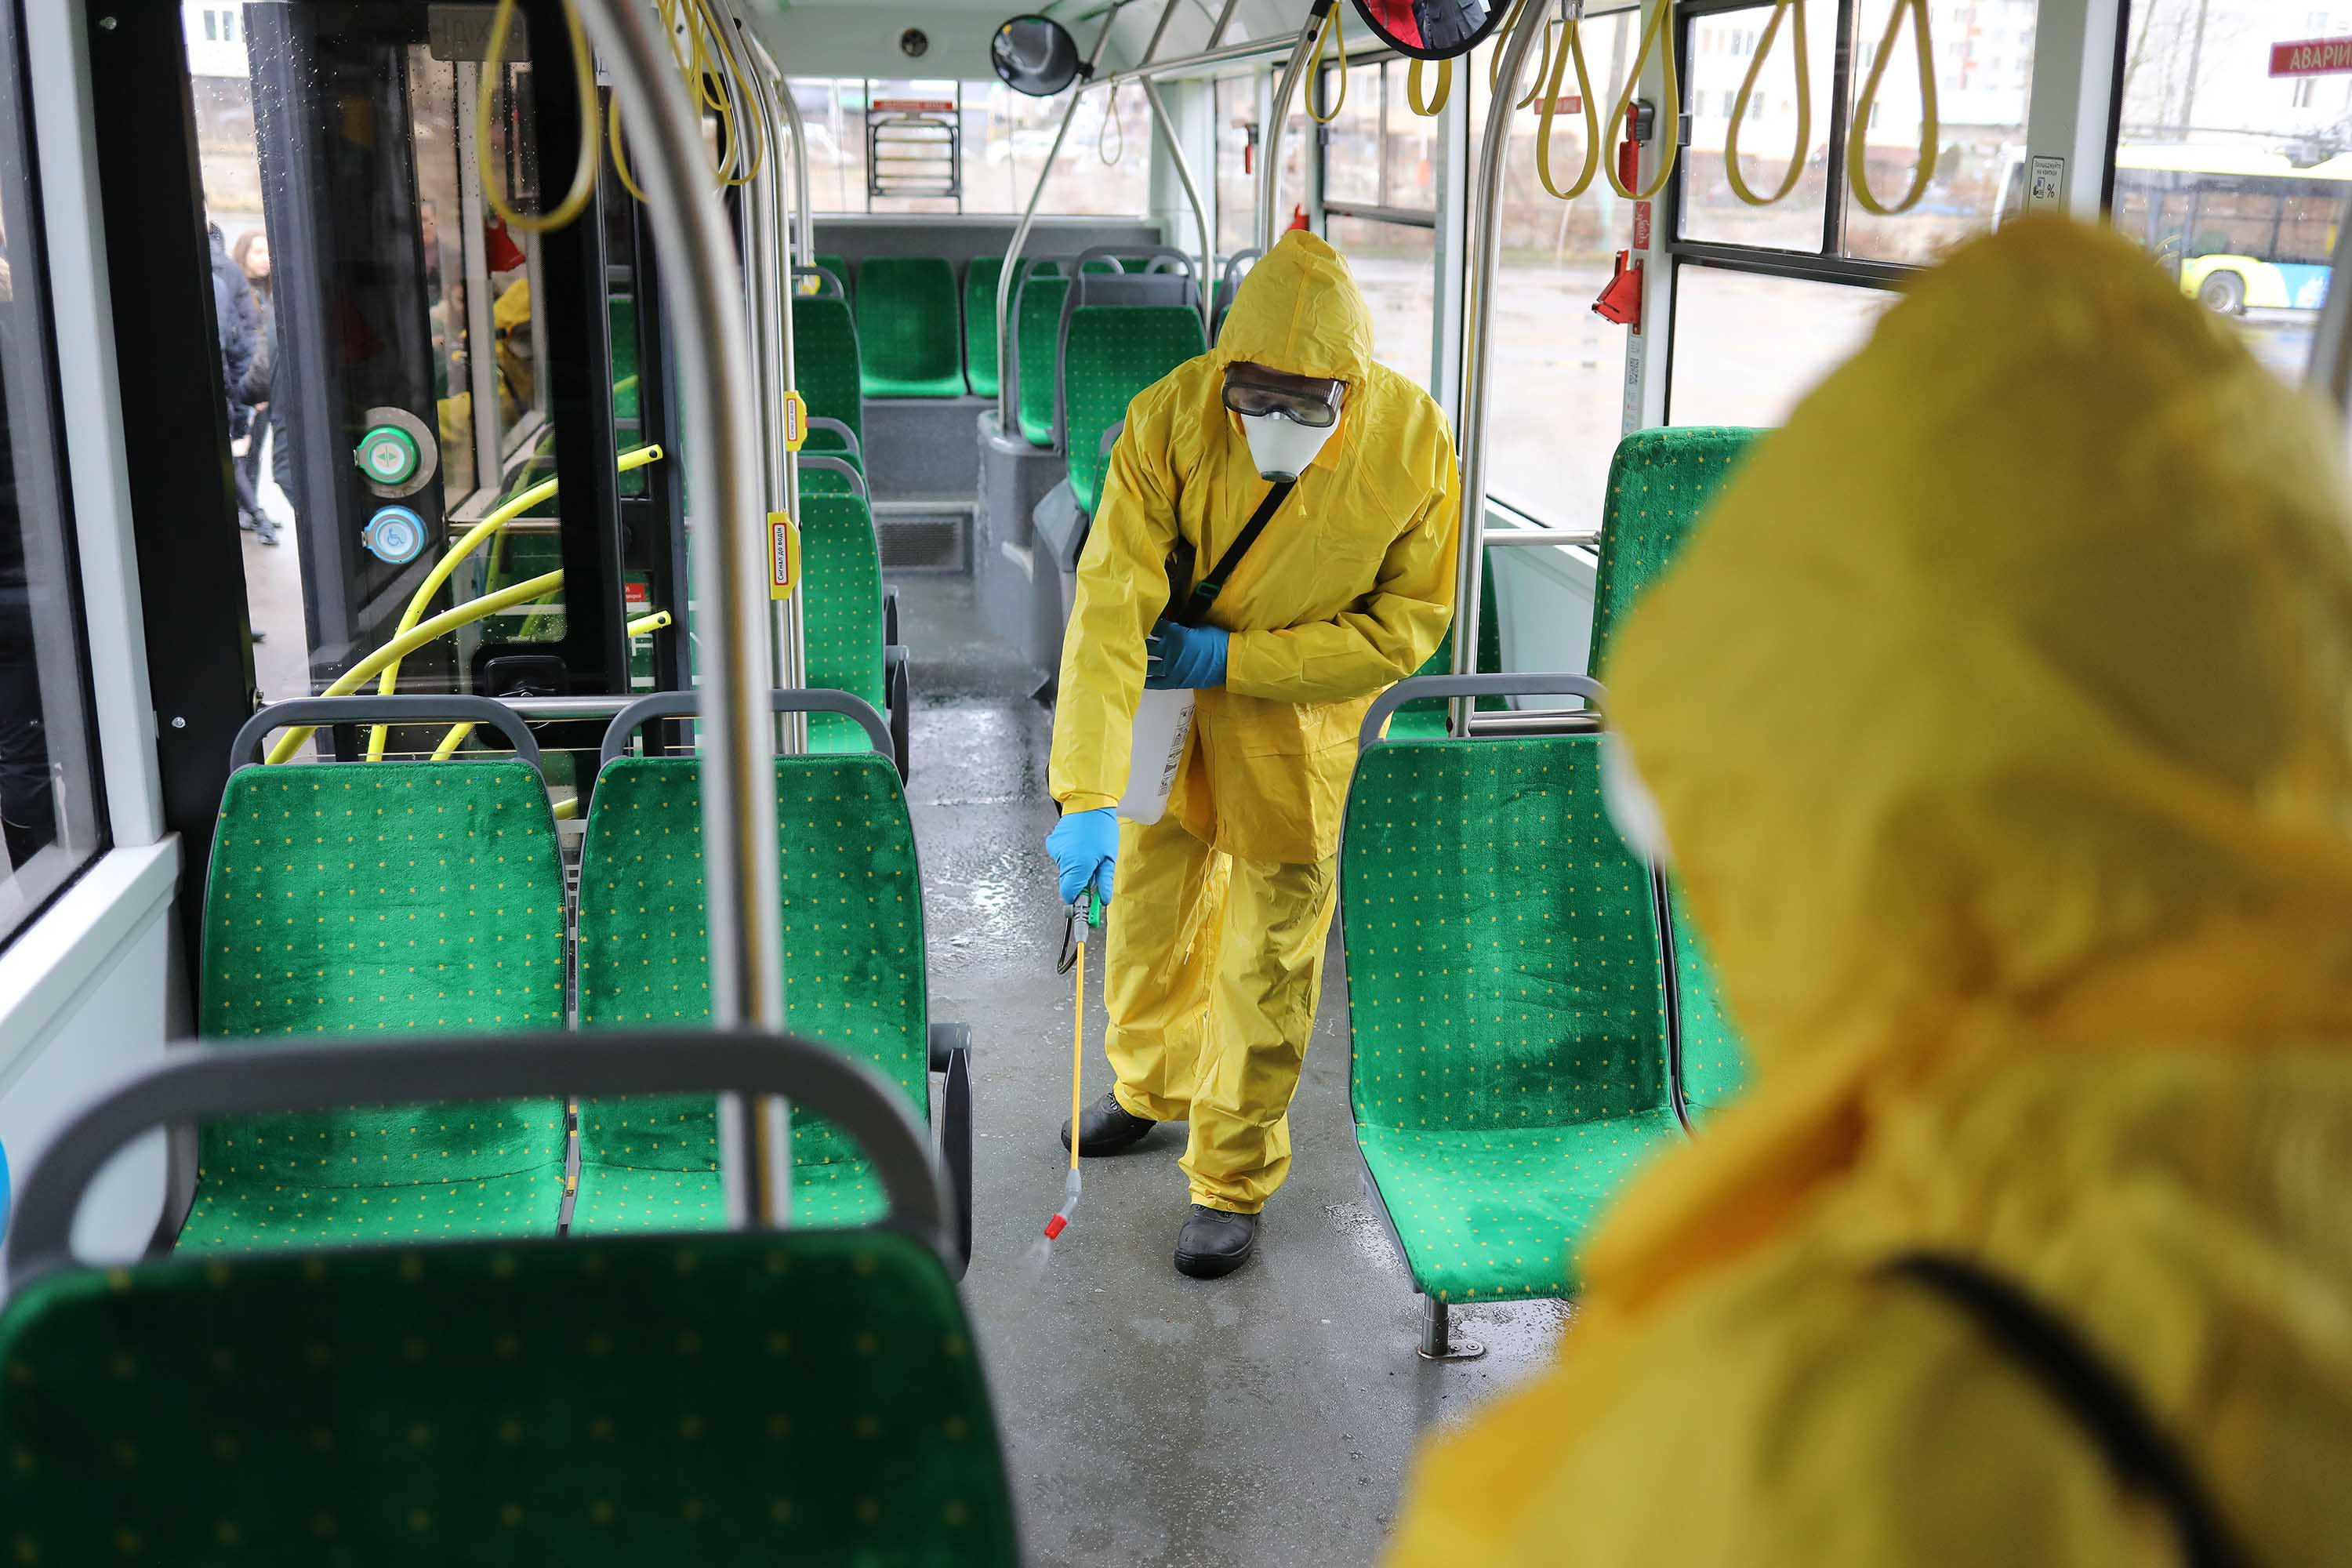 Workers in protective suits disinfect a bus in Lviv, Ukraine on March 2.